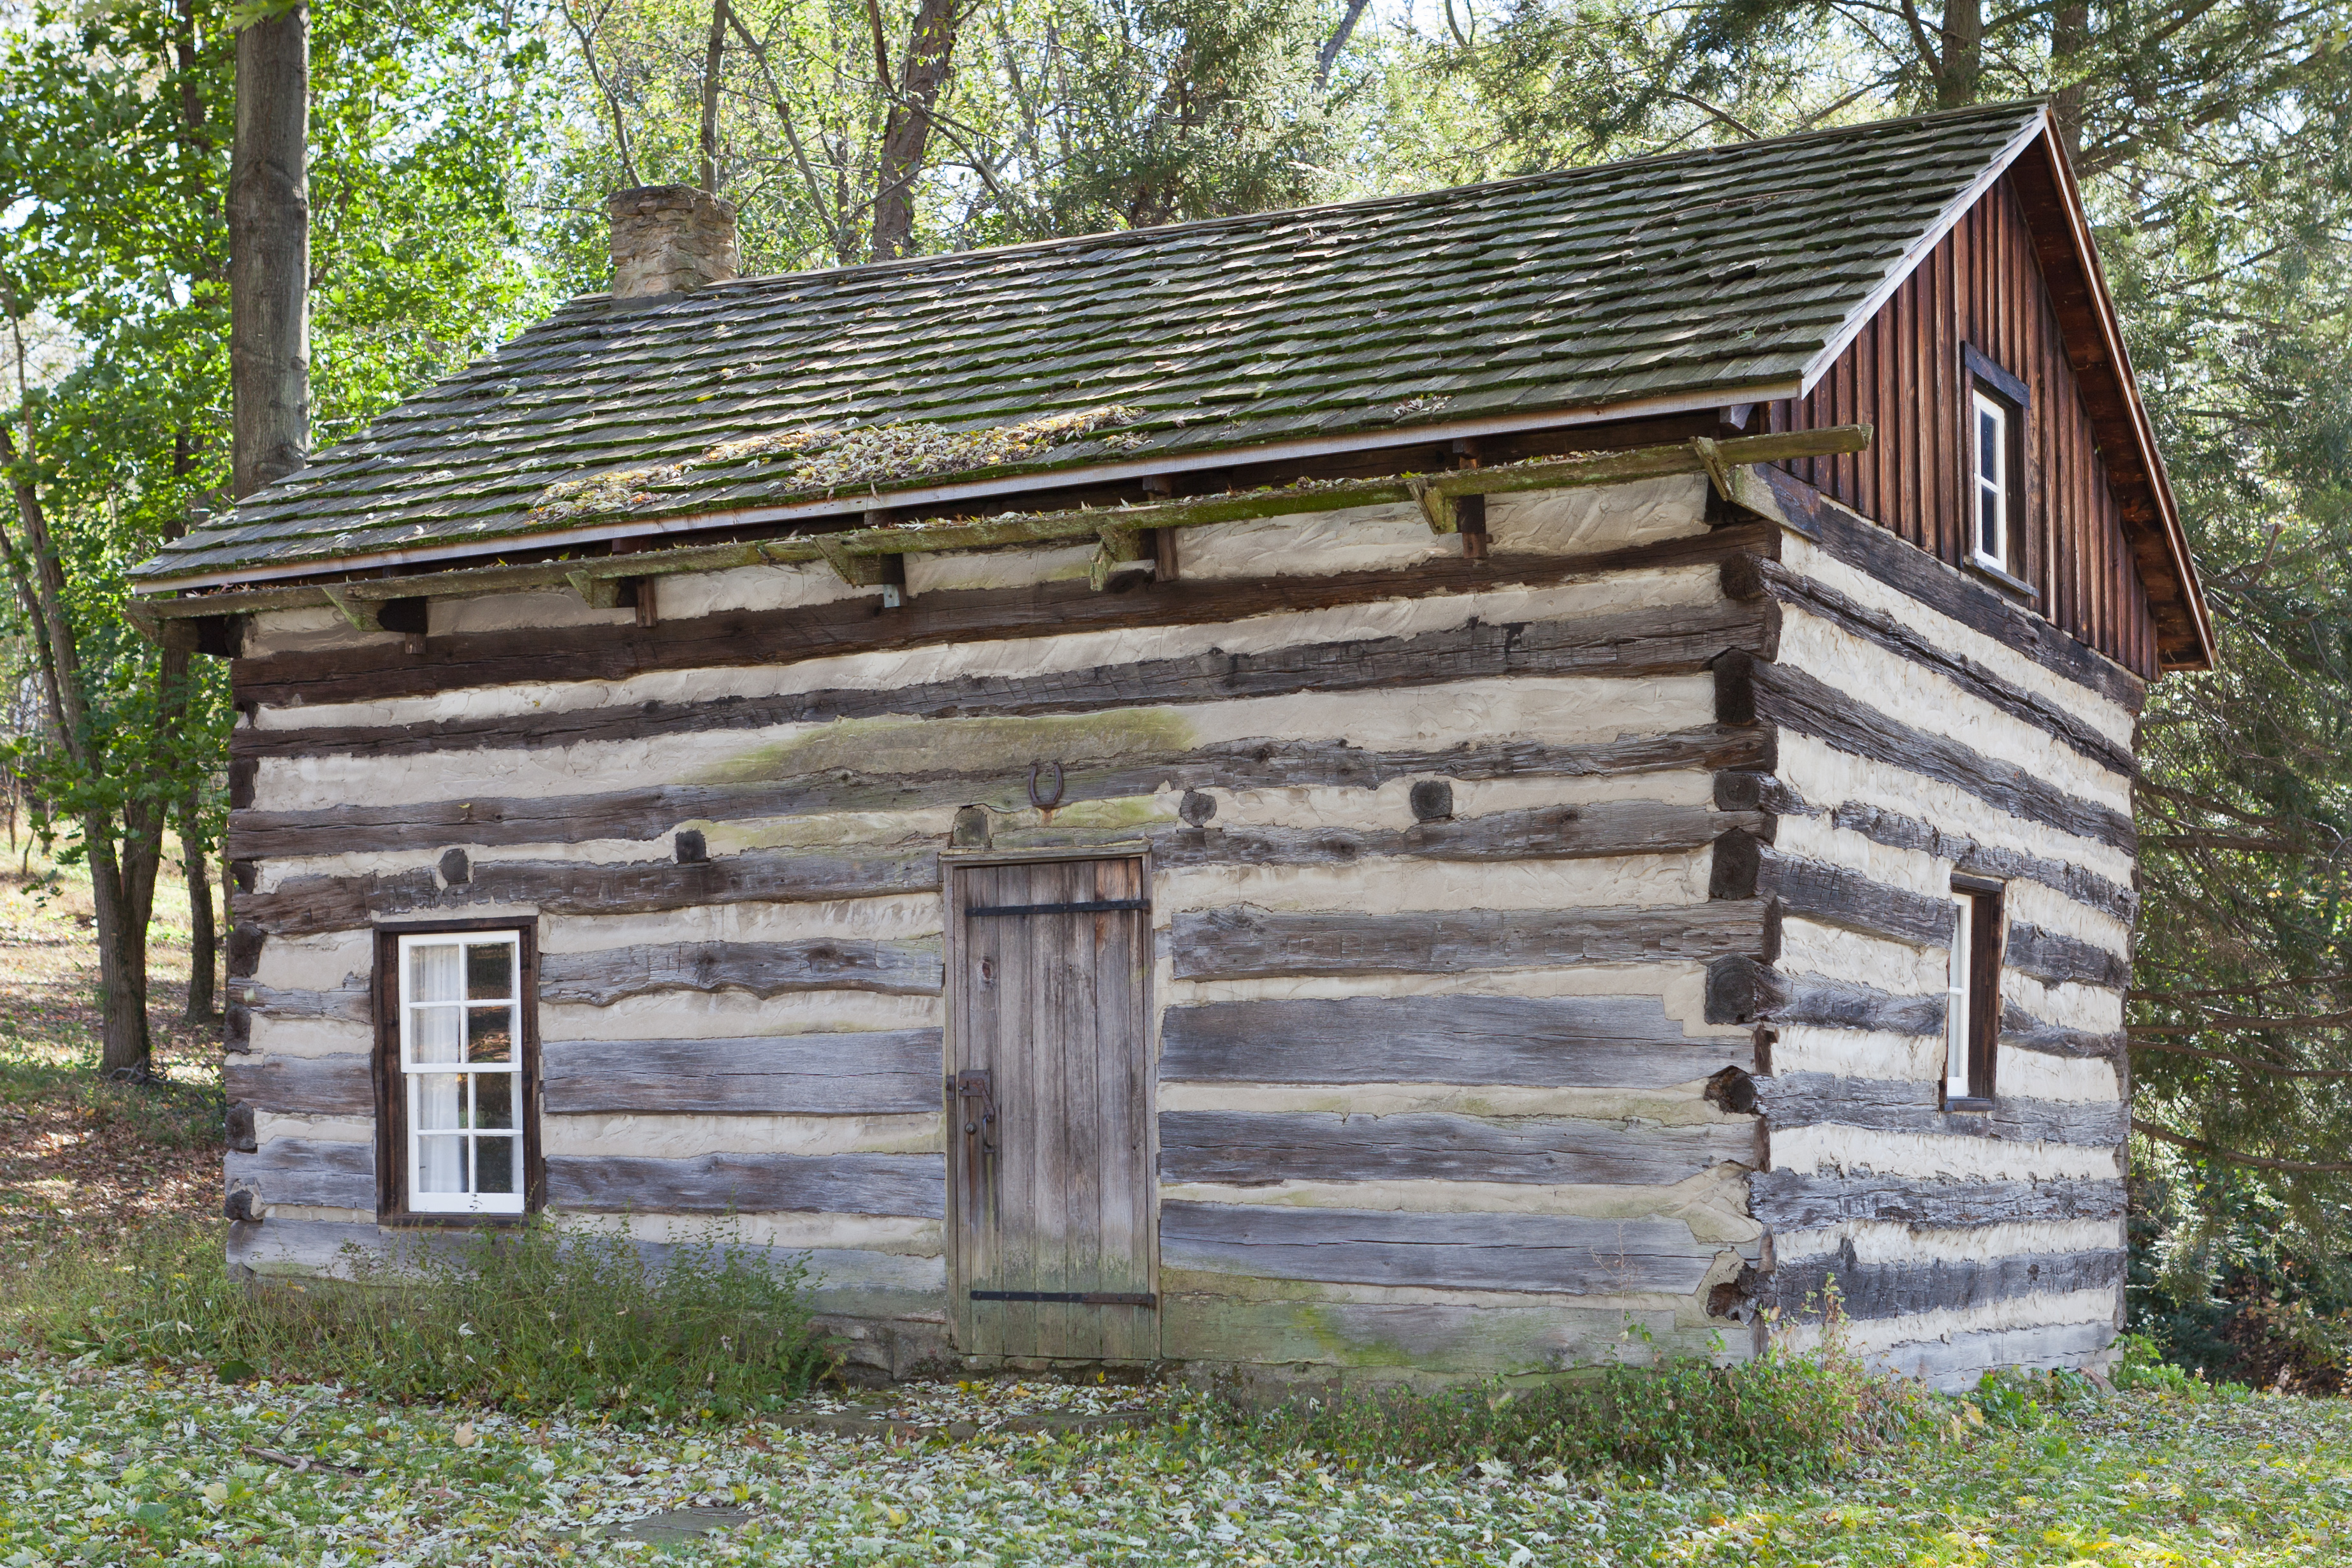 Marvelous photograph of Description Drake Log Cabin.jpg with #4E5E37 color and 3690x2460 pixels